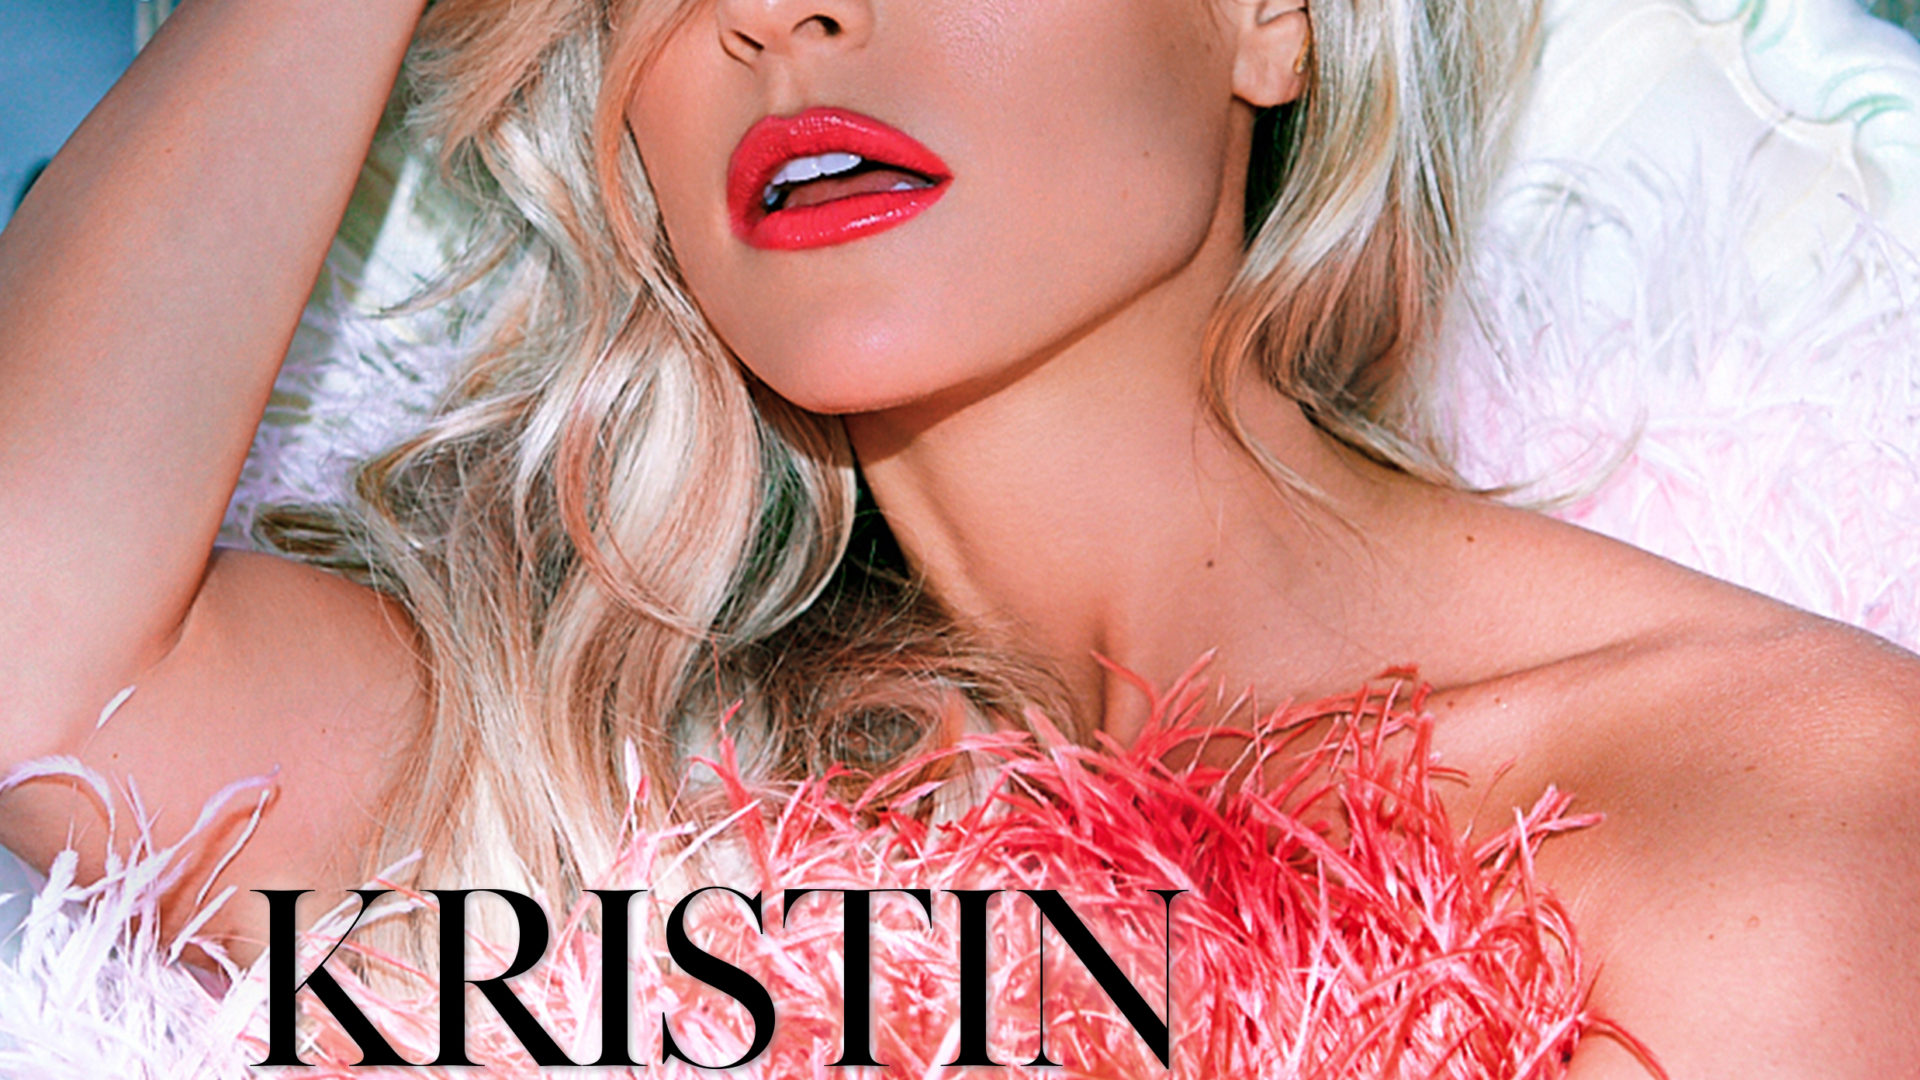 Actress and TV personality, KRISTIN CAVALLARI: Knows no bounds